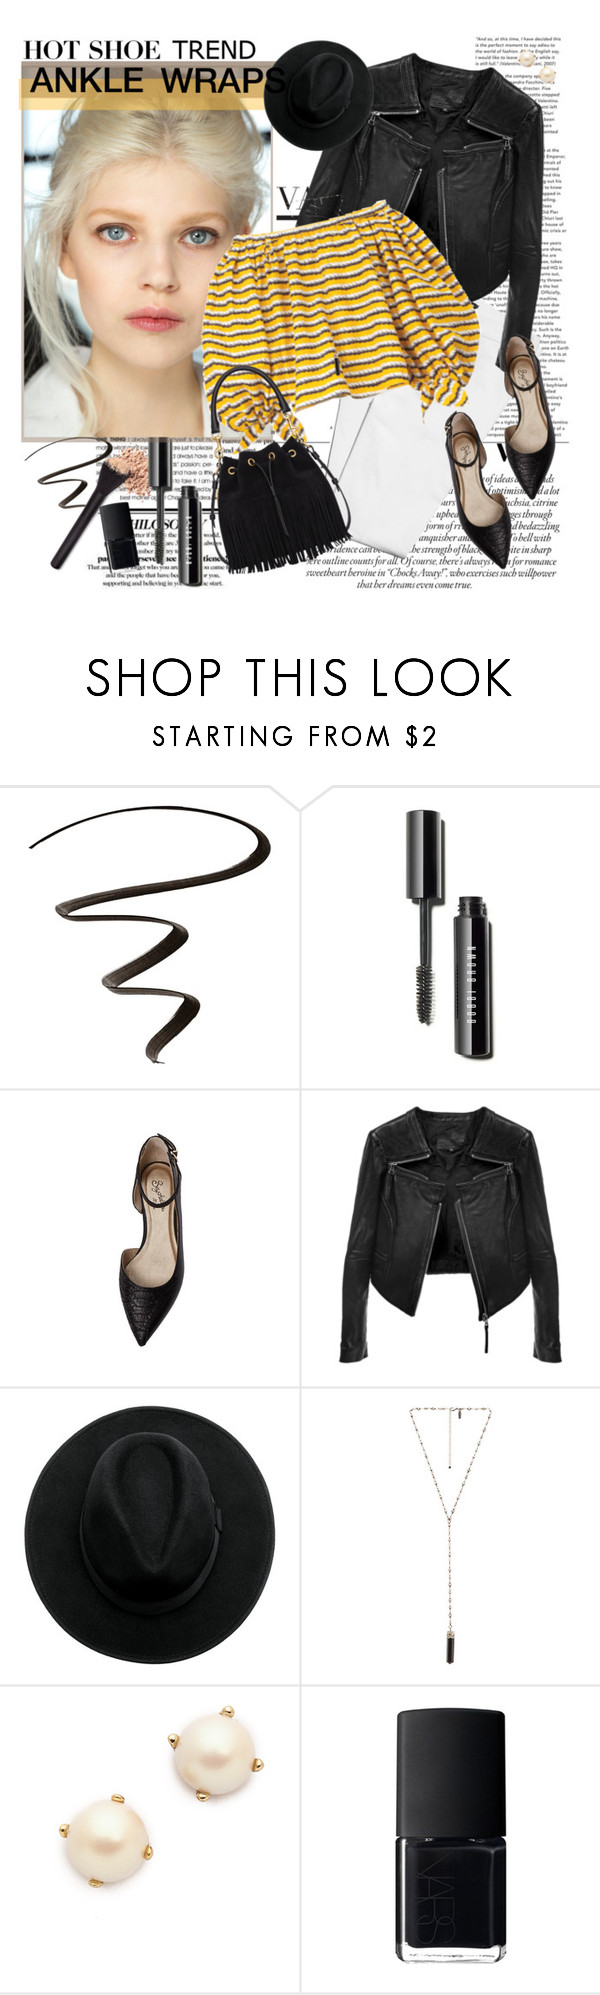 """""""Hot trend: ankle wrap flats"""" by style-matter ❤ liked on Polyvore featuring COVERGIRL, Seychelles, Linea Pelle, Yves Saint Laurent, Natalie B, Kate Spade, NARS Cosmetics, shoes, trend and contestentry"""